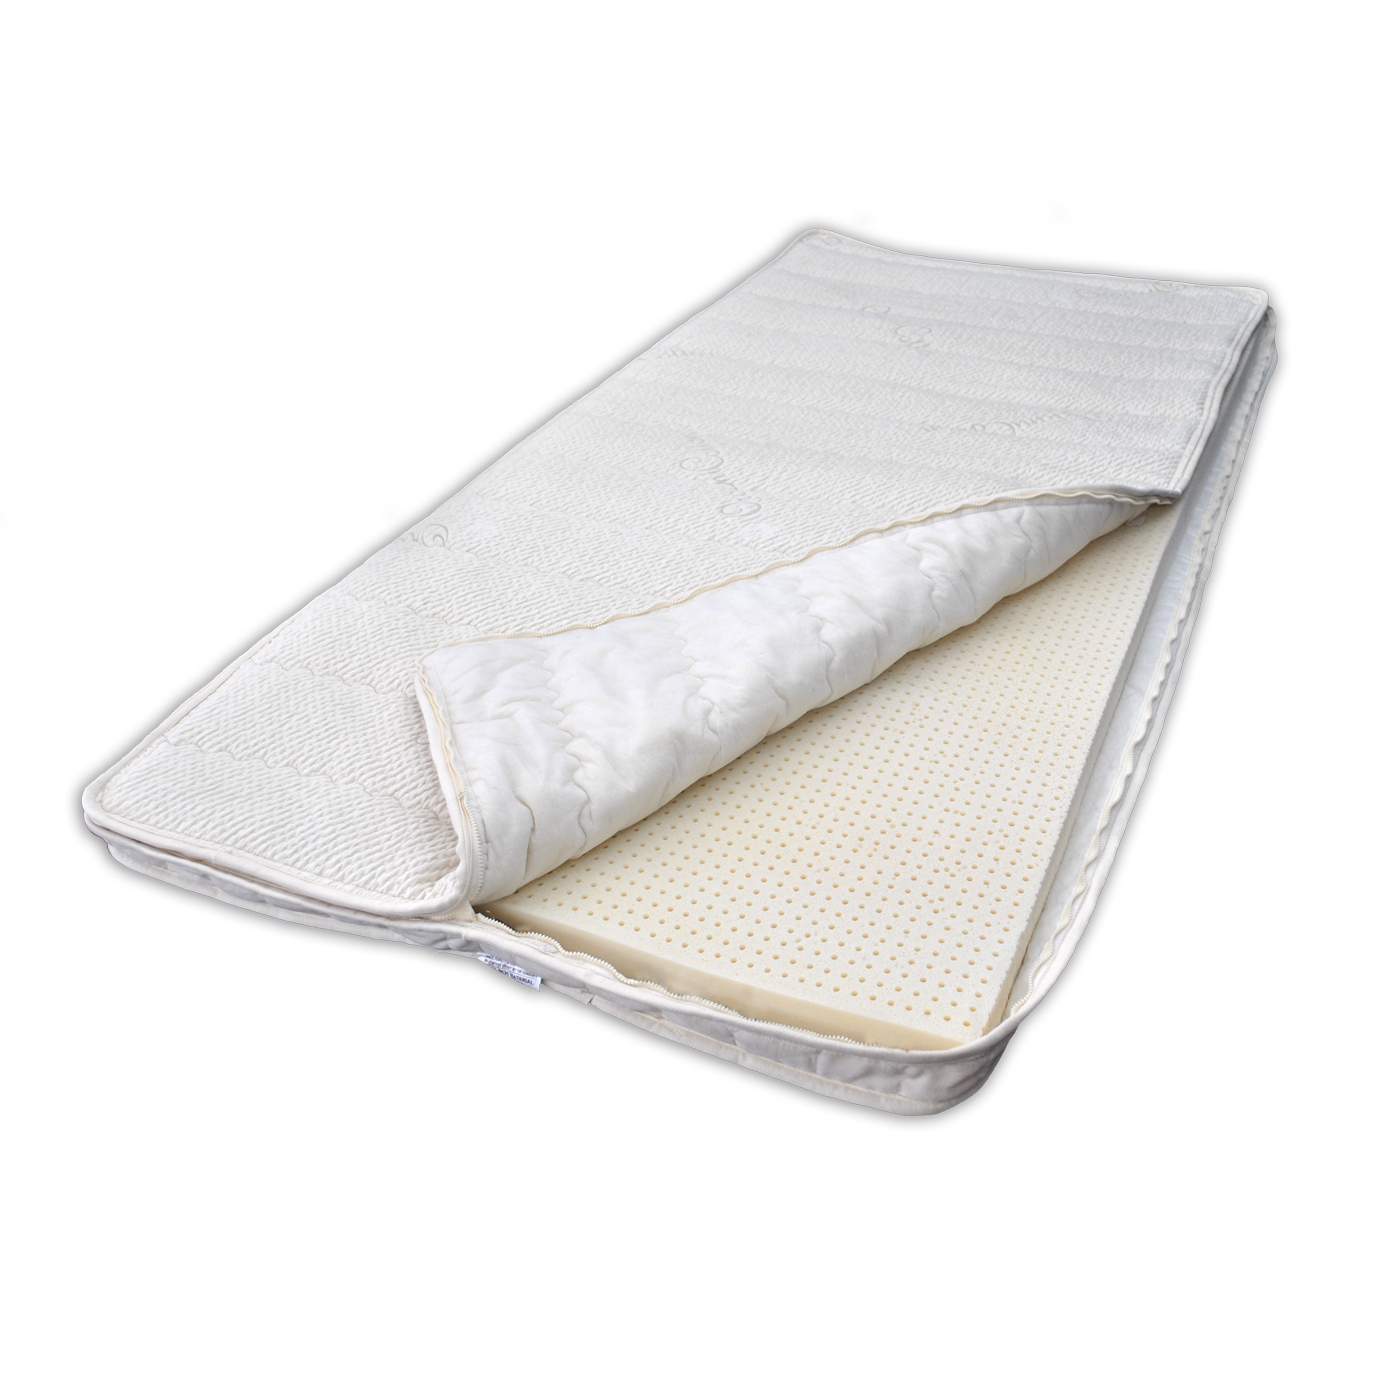 Extra Firm King Mattress Topper ... NATURAL ADJUSTABLE BED MATTRESS PADS, discount SHEETS AND BEDDING